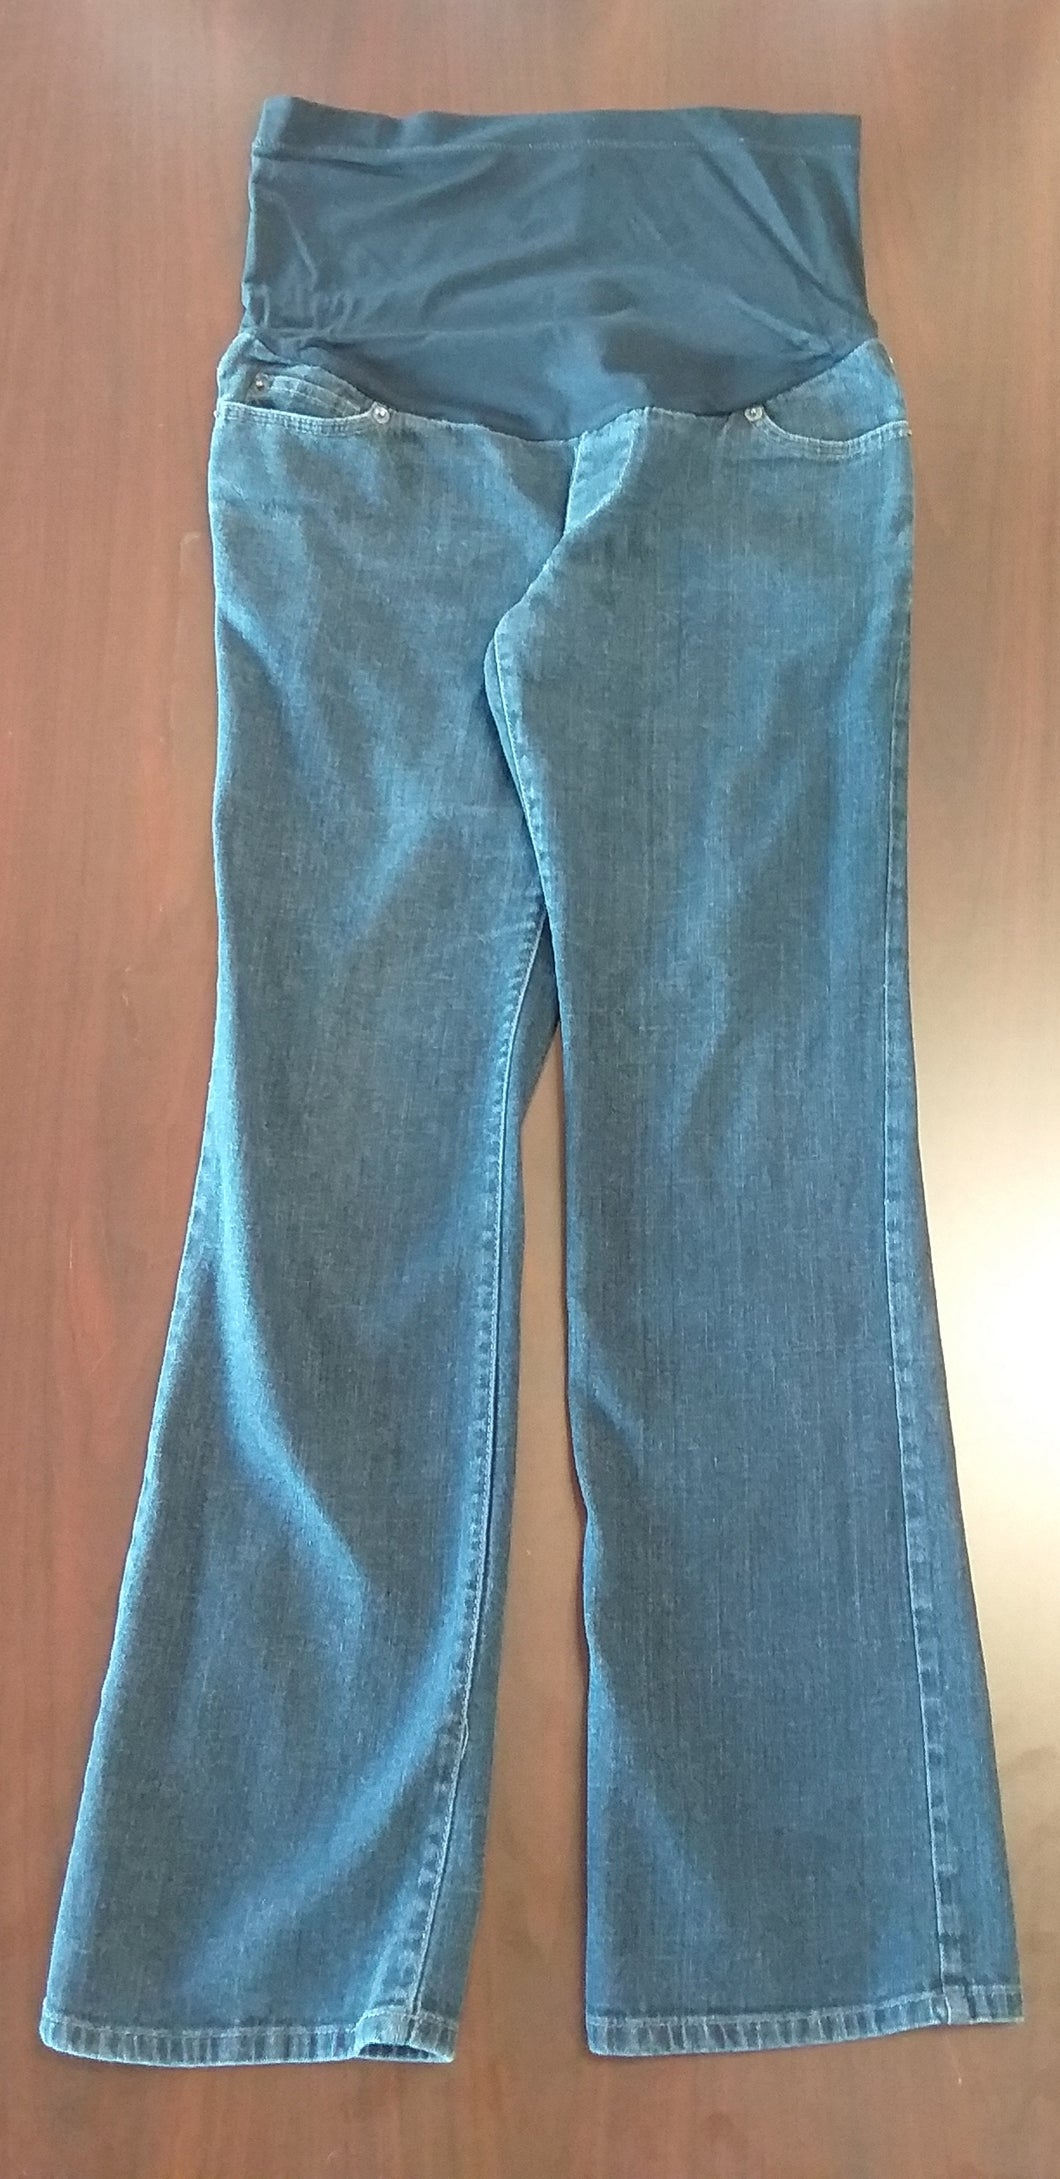 Size 4 Full Panel Dark Wash Straight Leg Jean